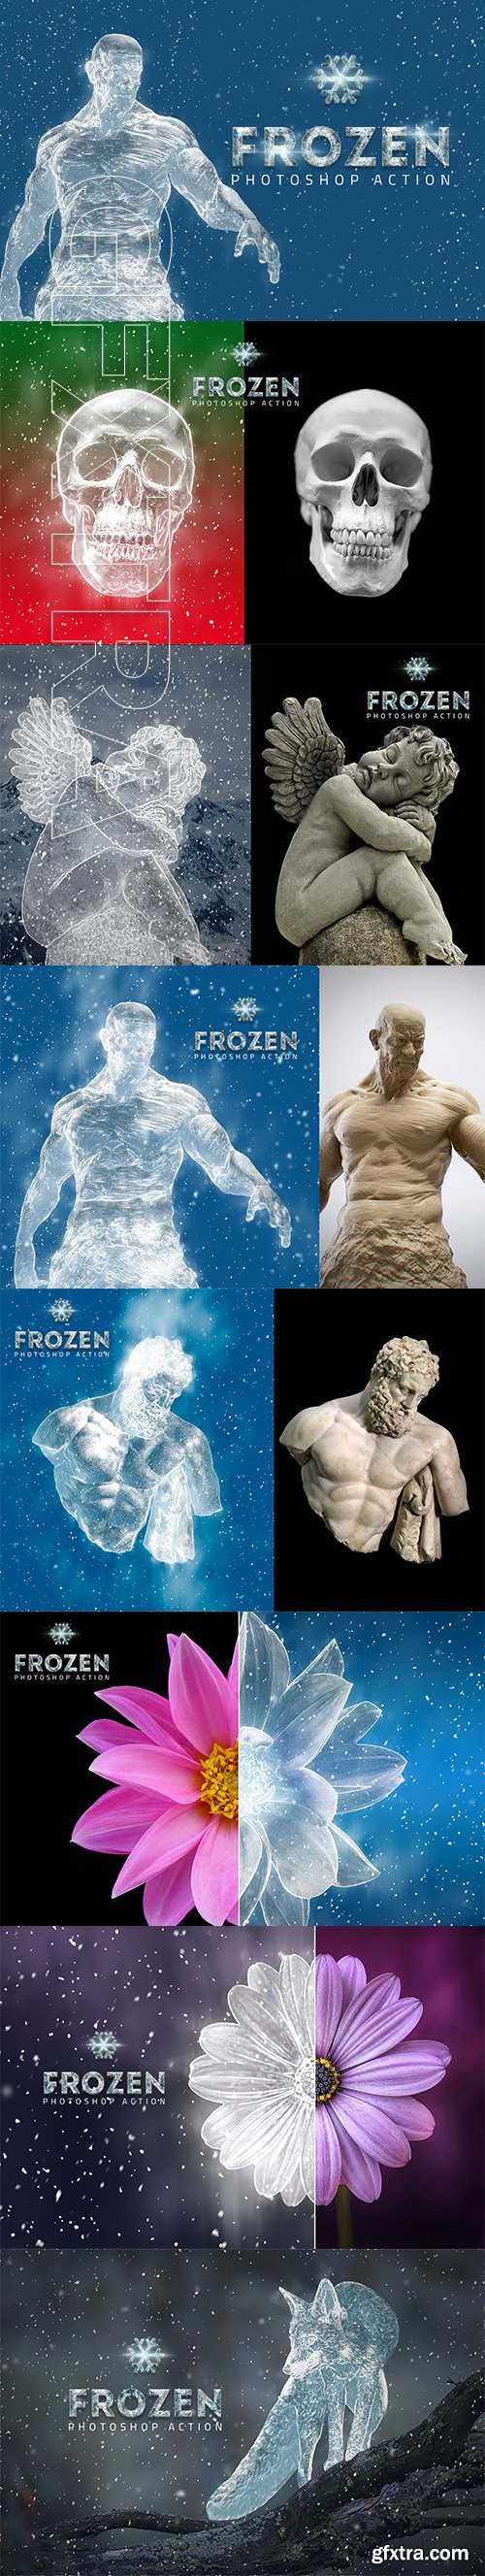 CreativeMarket - Frozen Ice Photo Effect 3119587